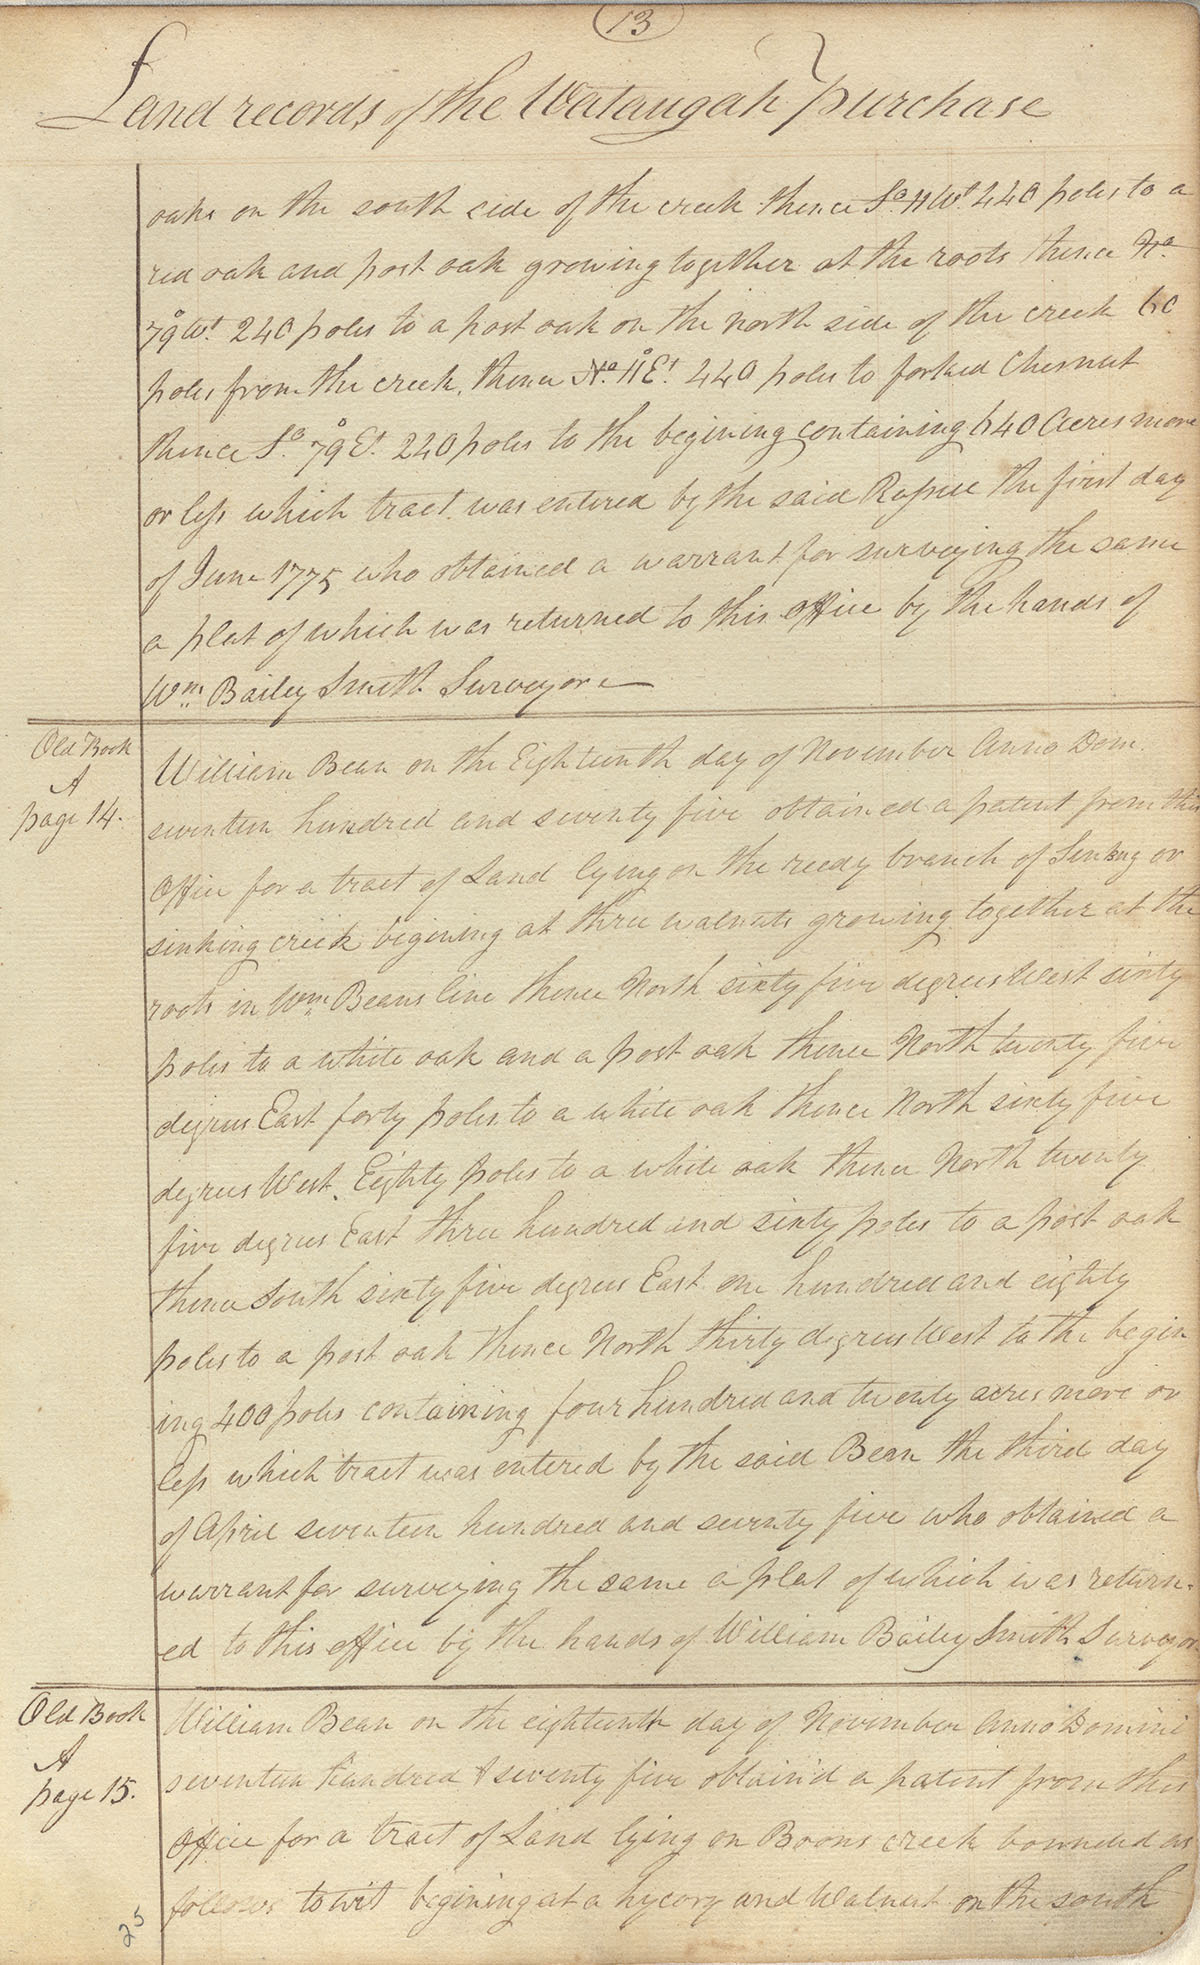 A page from the Watauga Purchase, the first transfer of land in Tennessee from natives to settlers such as William Bean